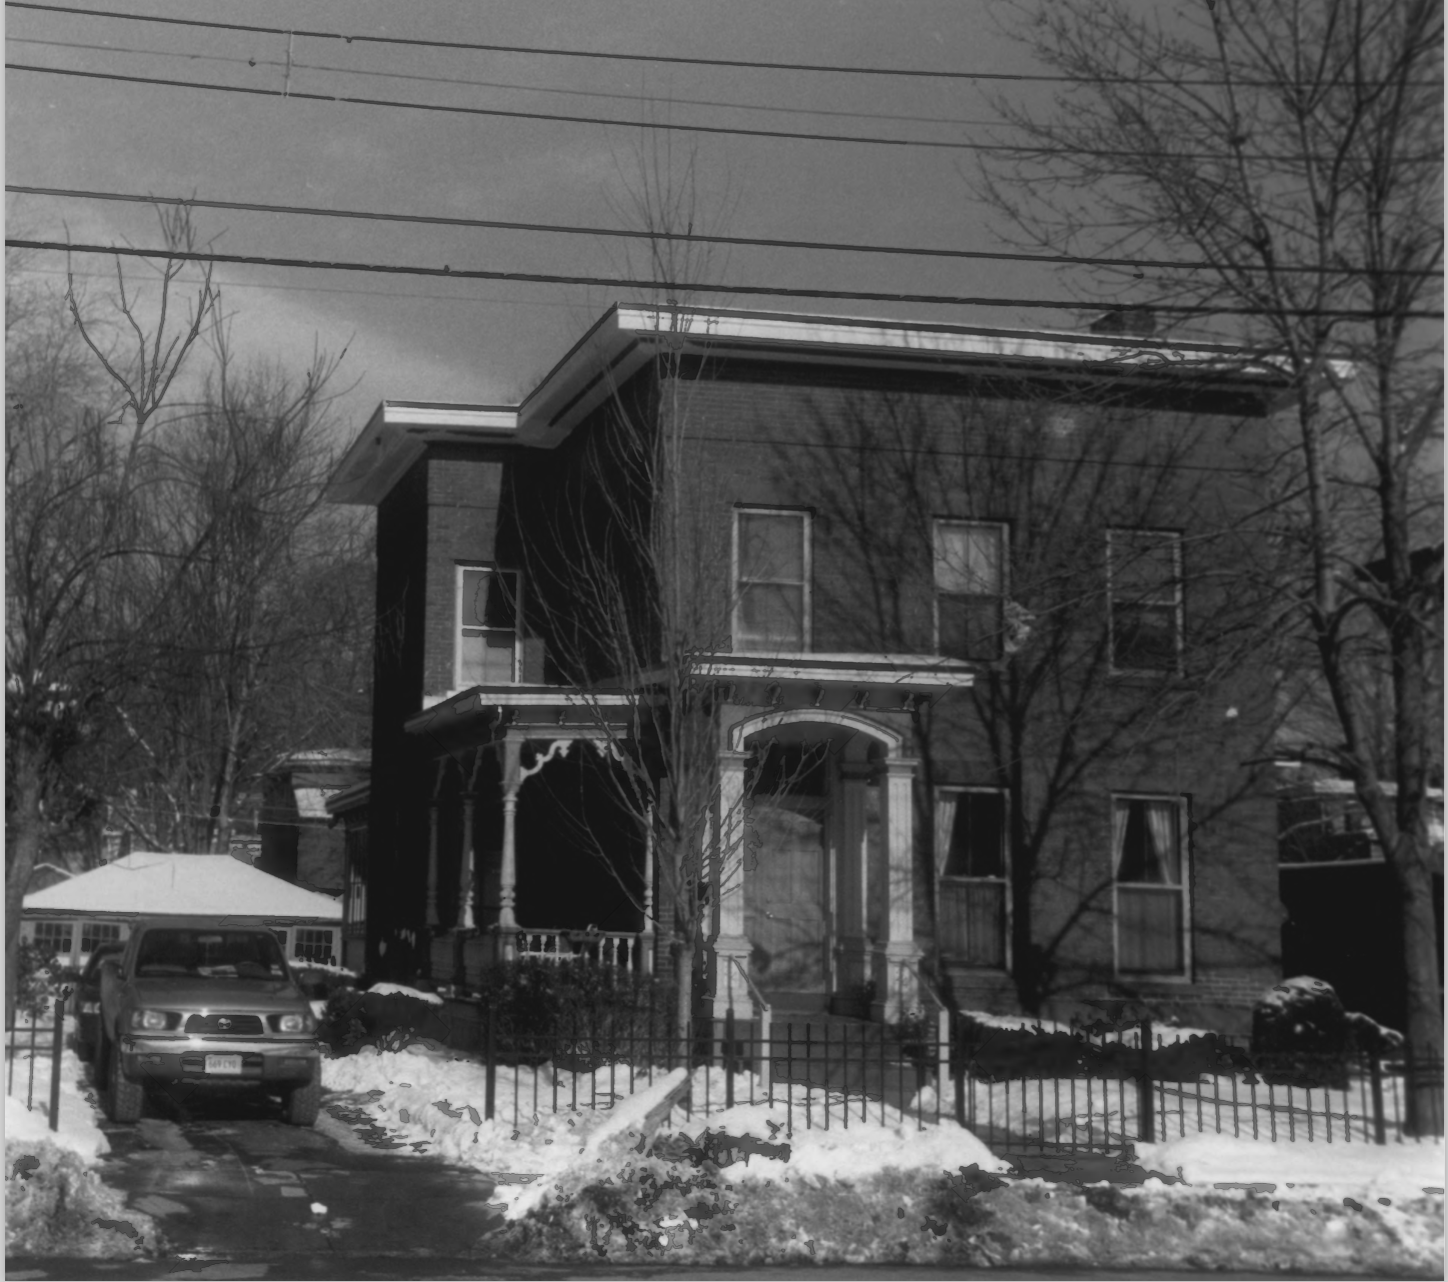 Allen Place - Lincoln Street Historic District Photo Record, Maintained by the NPS, Photo 16